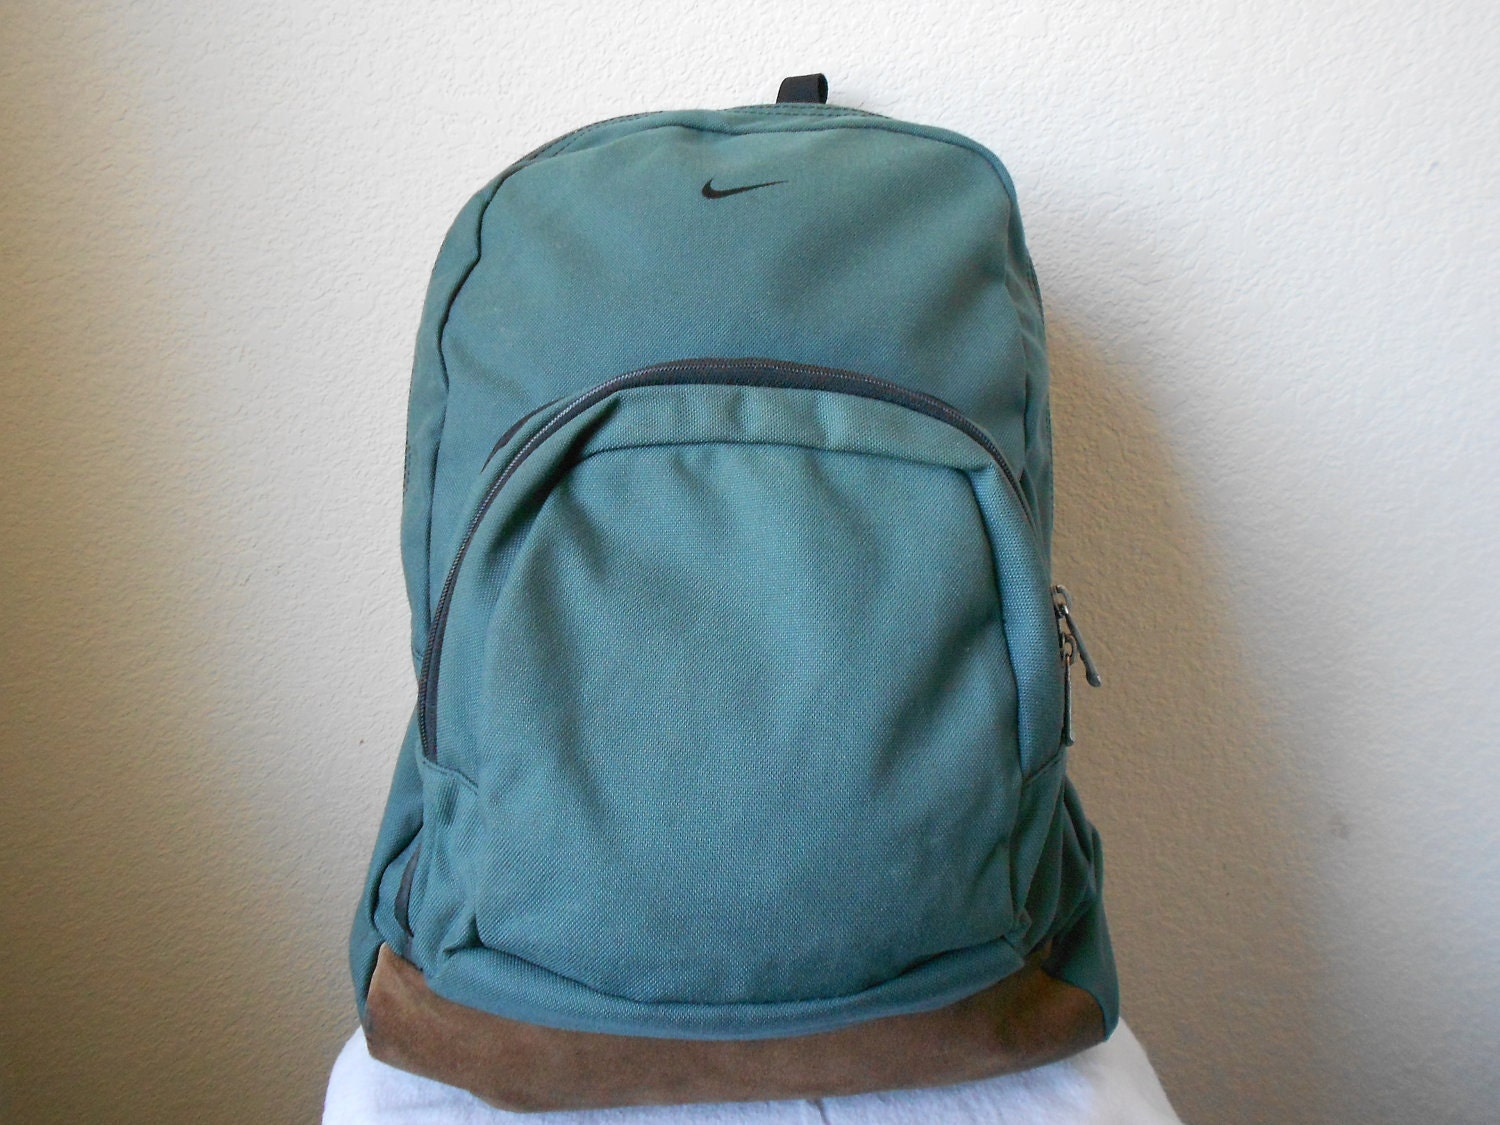 Large NIKE Green Back Pack 1990s LEATHER - TheVintageGoodyShop